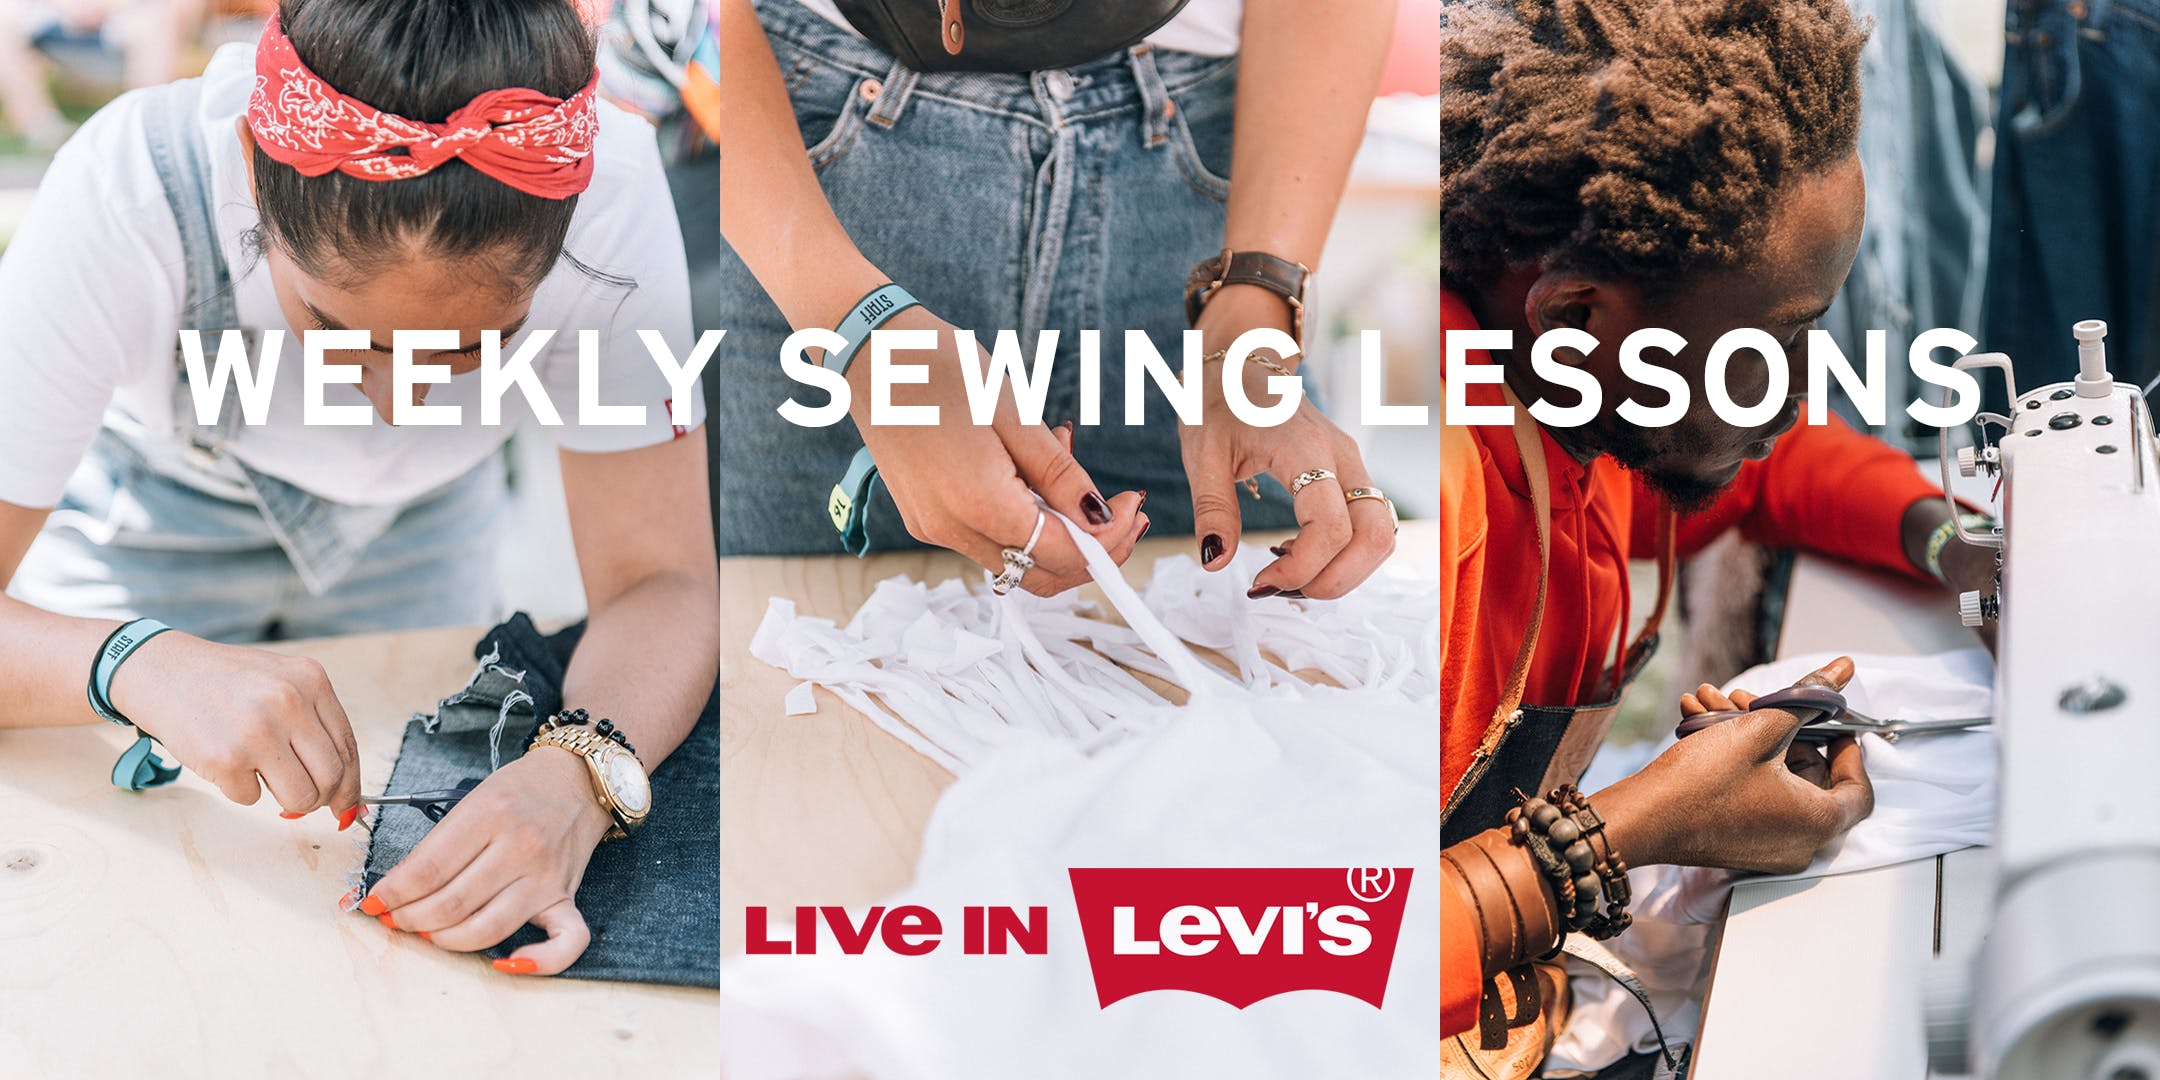 Levi's Weekly's Sewing Lesson / Become a Tail